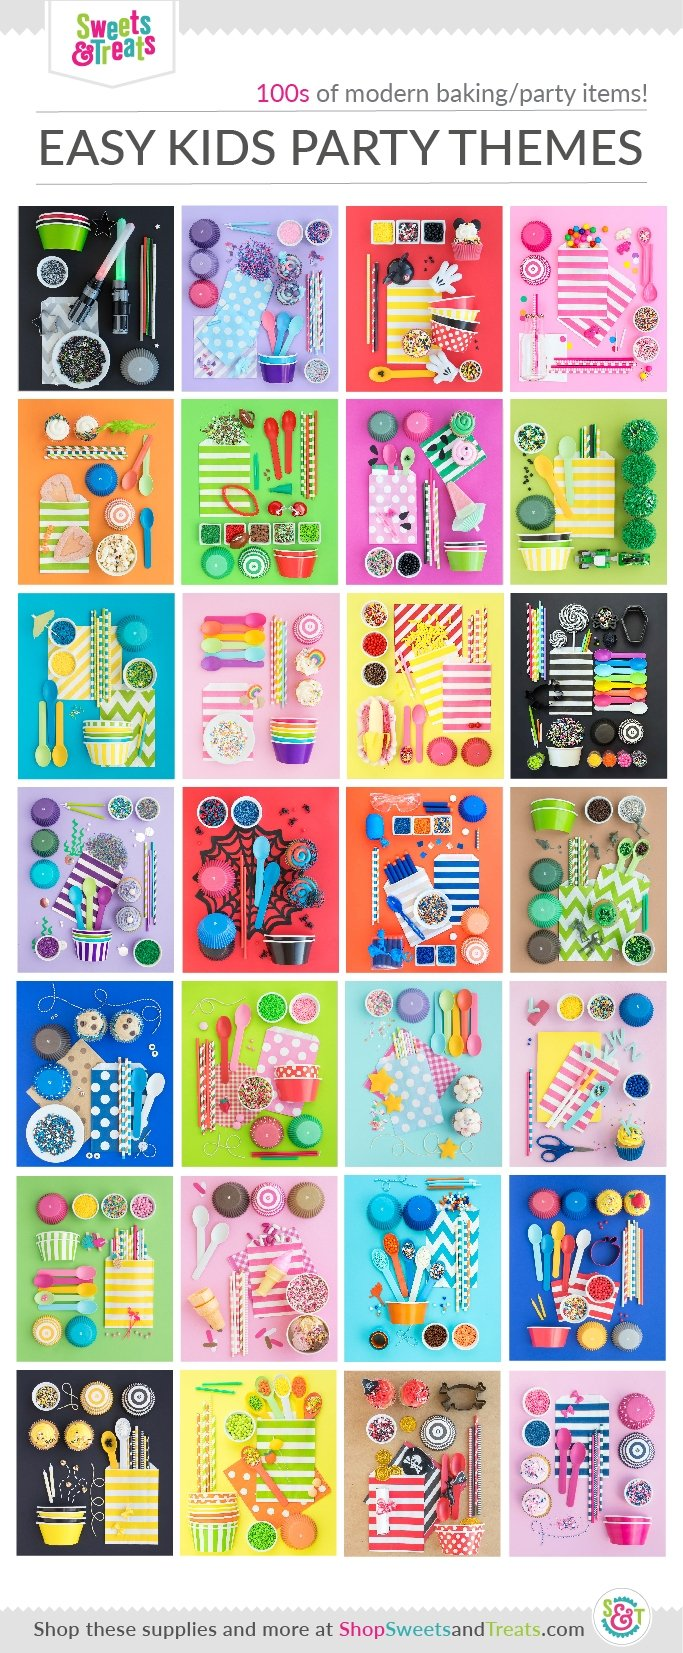 Easy Kids Birthday Party Ideas - Party Themes for Kids Collage using hundreds of Sweets & Treats party supplies